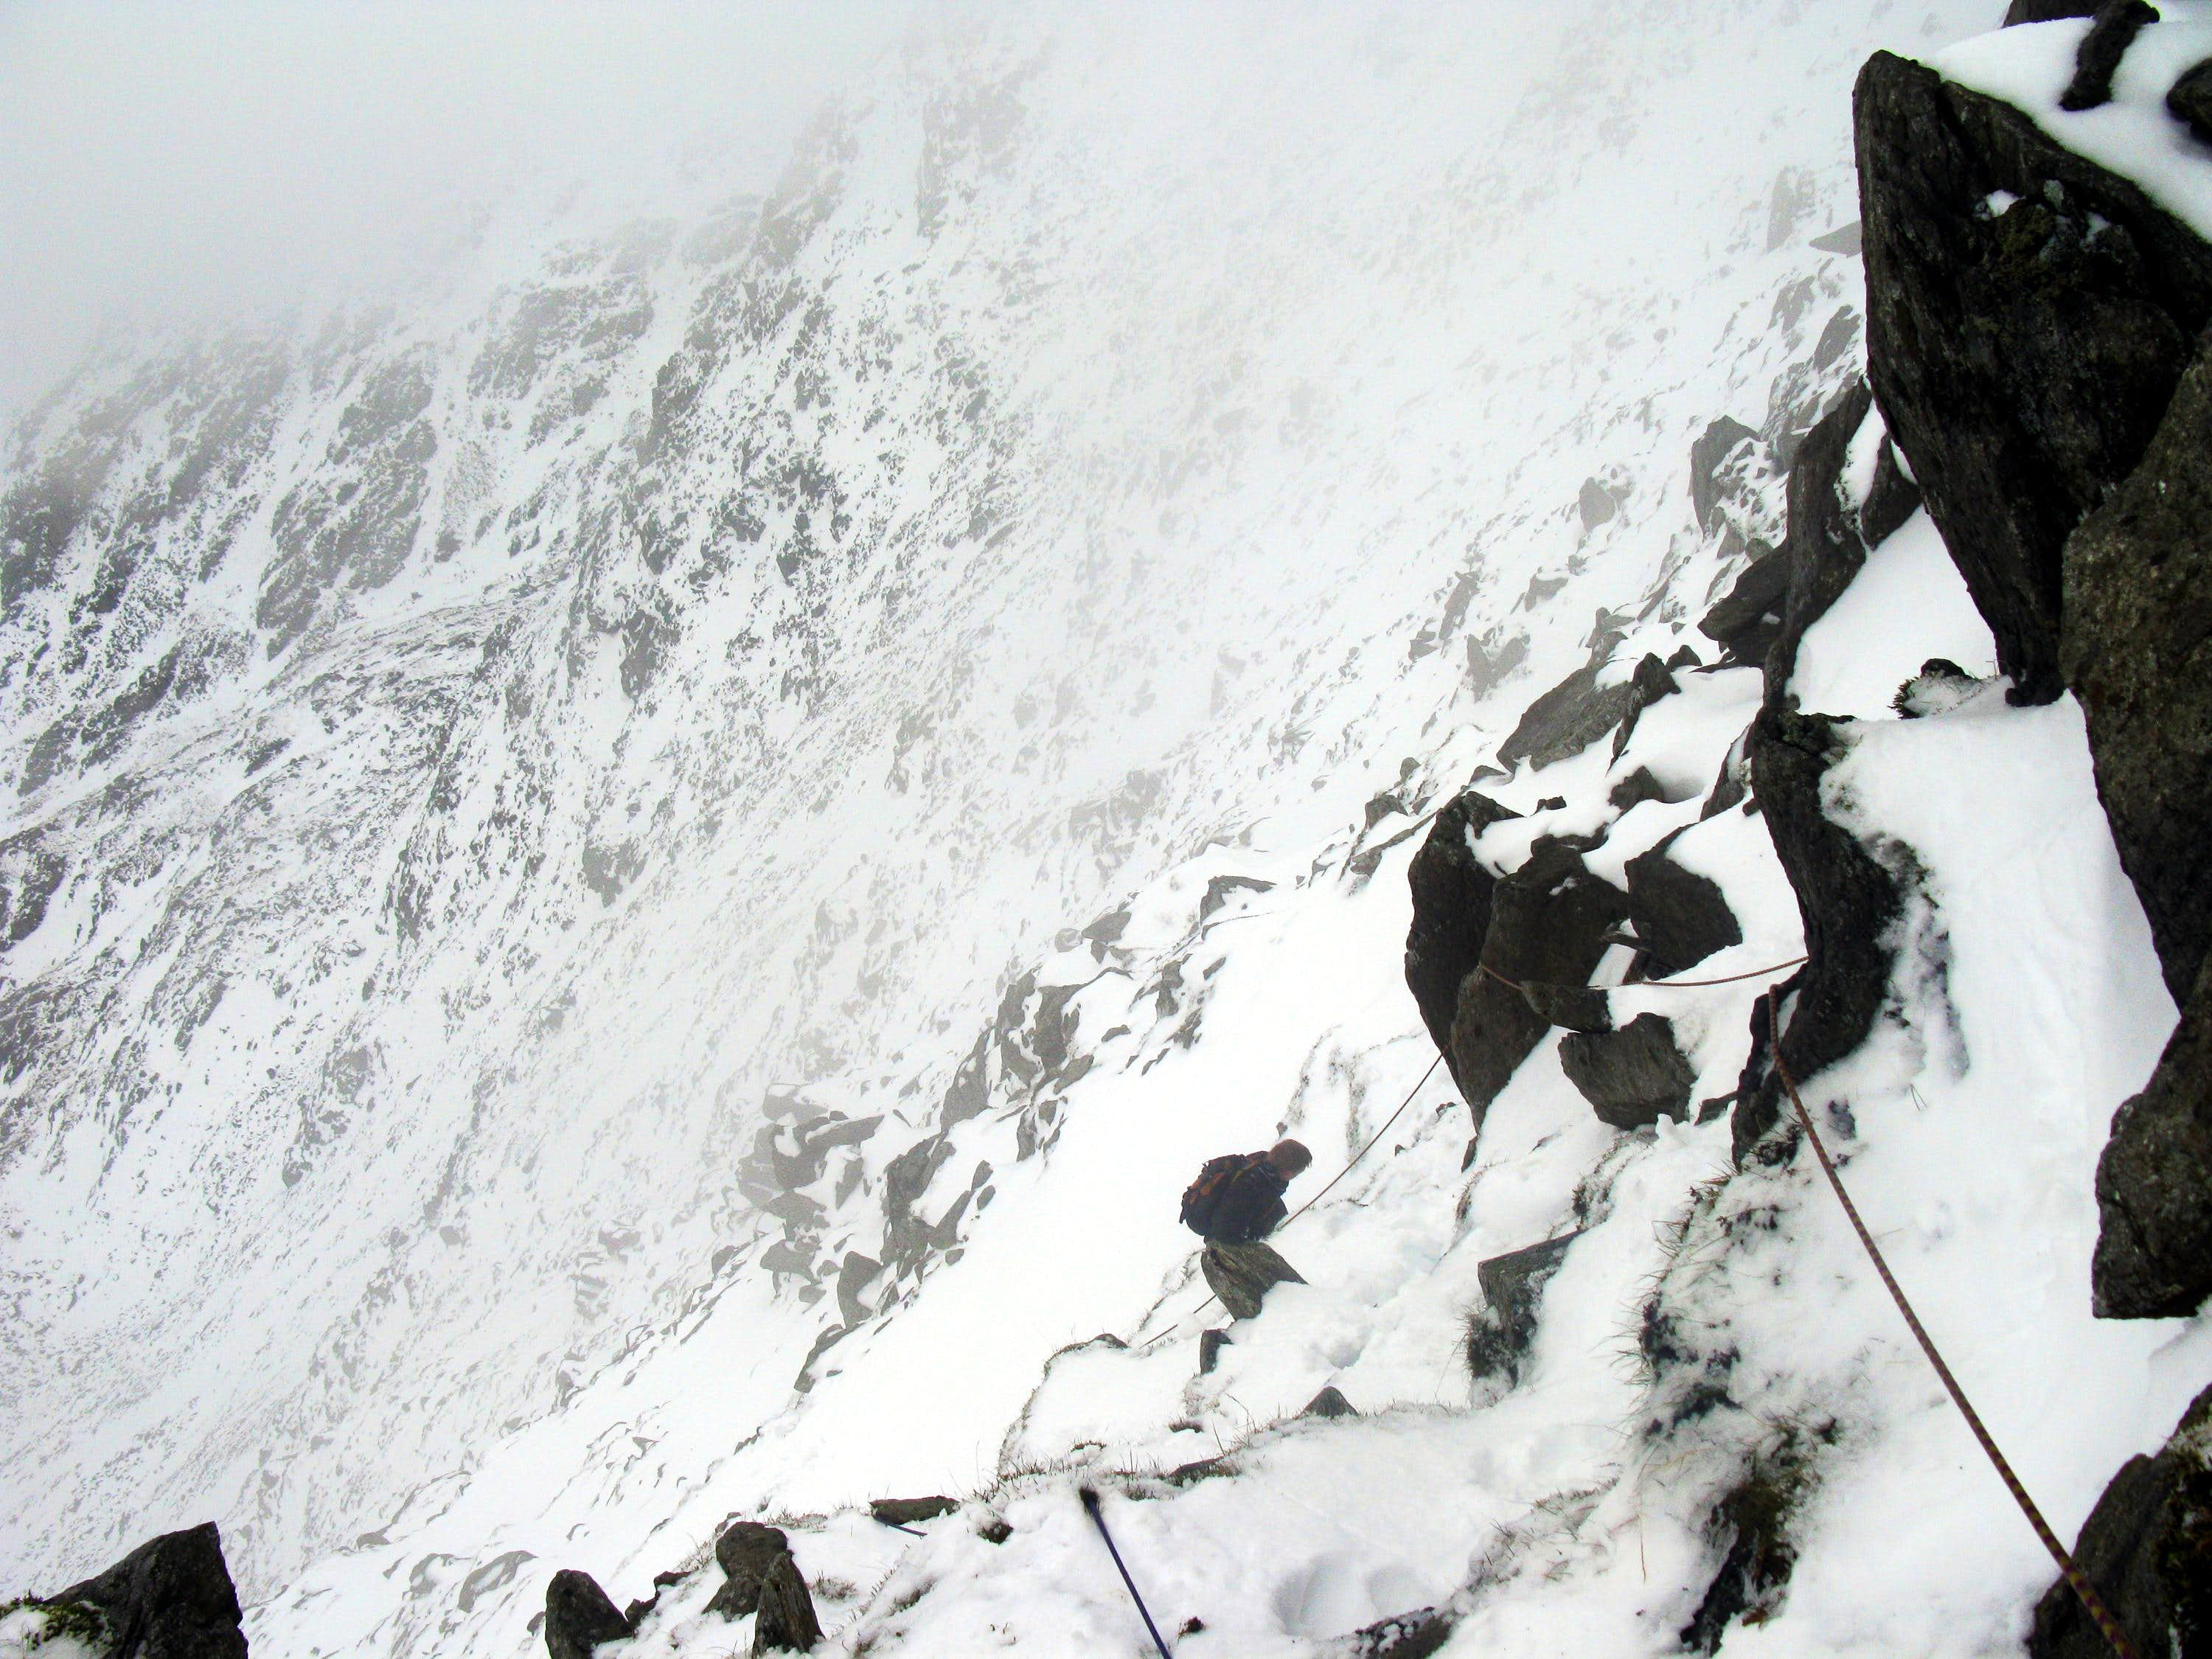 The North Face of Glyder Fach